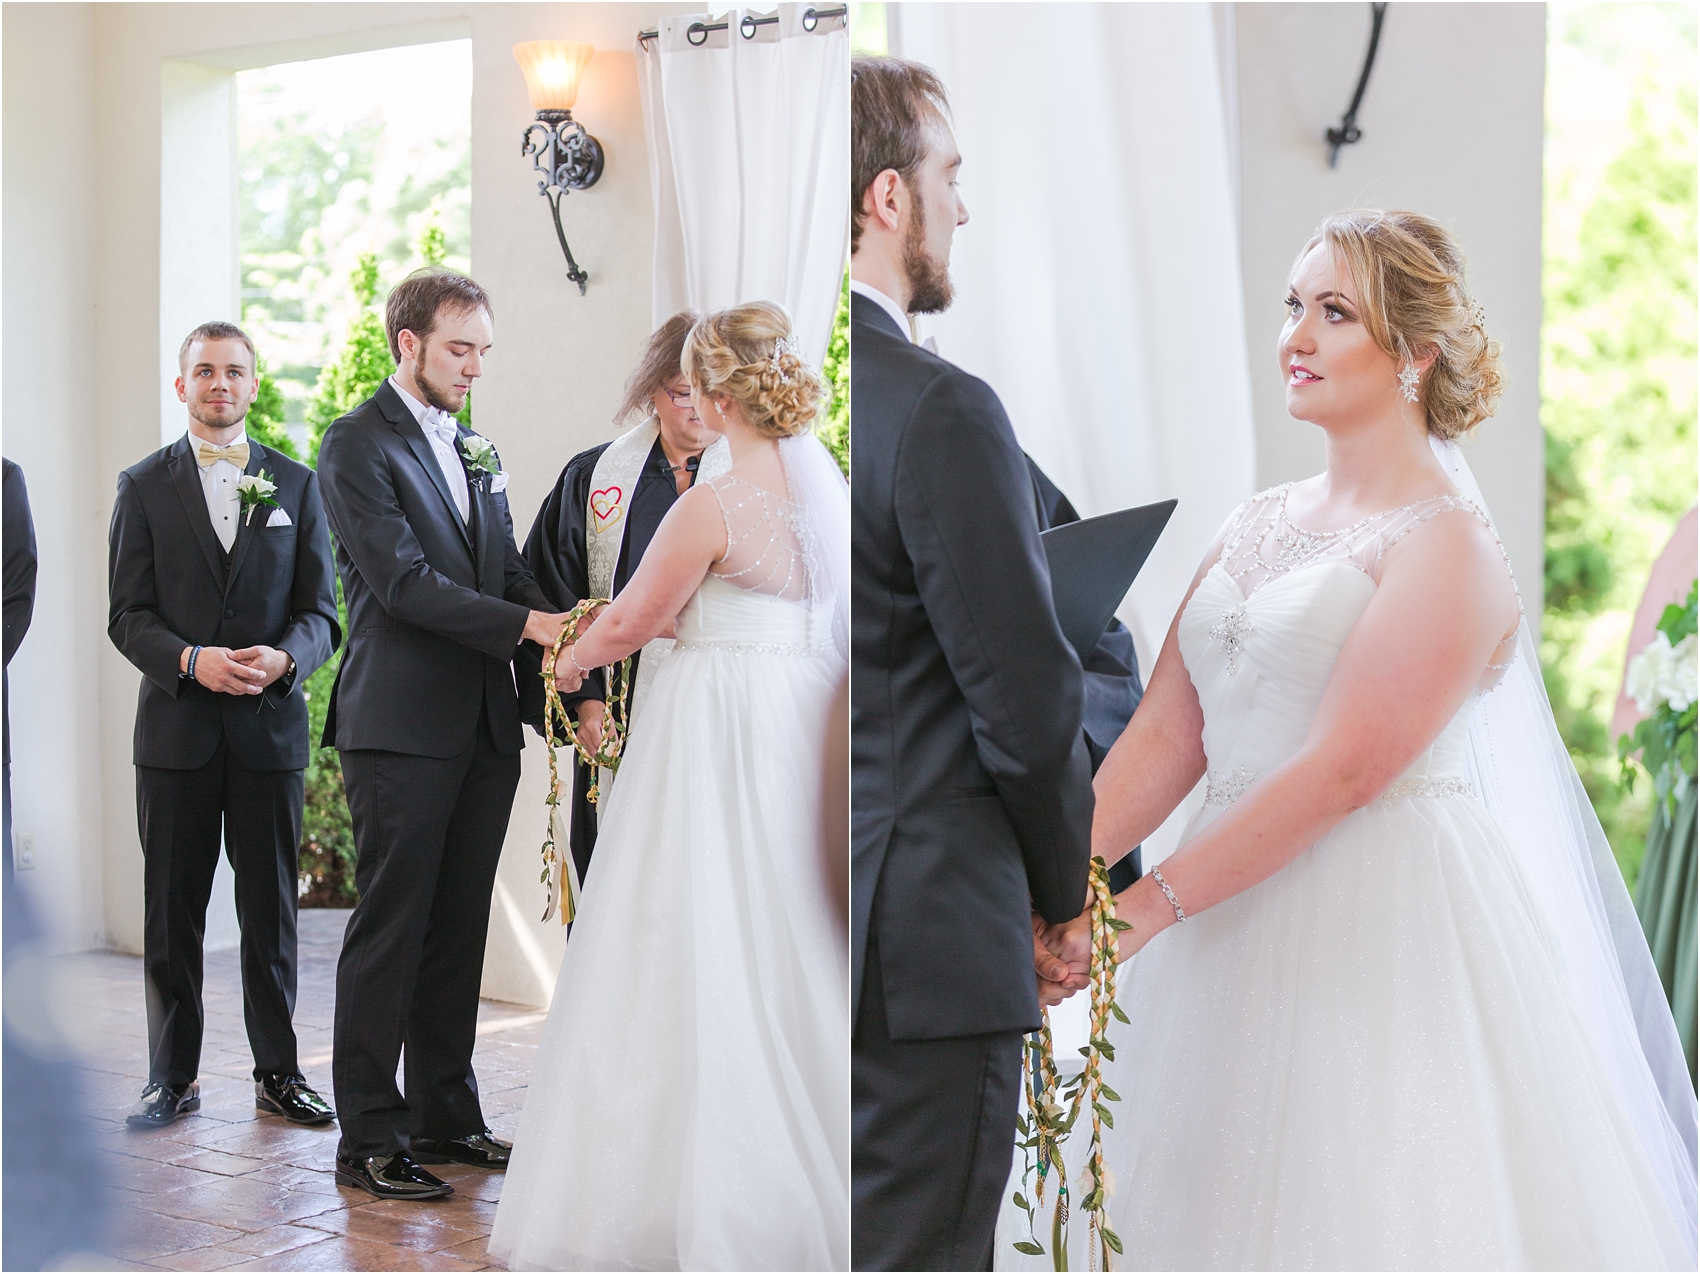 lord-of-the-rings-inspired-wedding-photos-at-crystal-gardens-in-howell-mi-by-courtney-carolyn-photography_0037.jpg